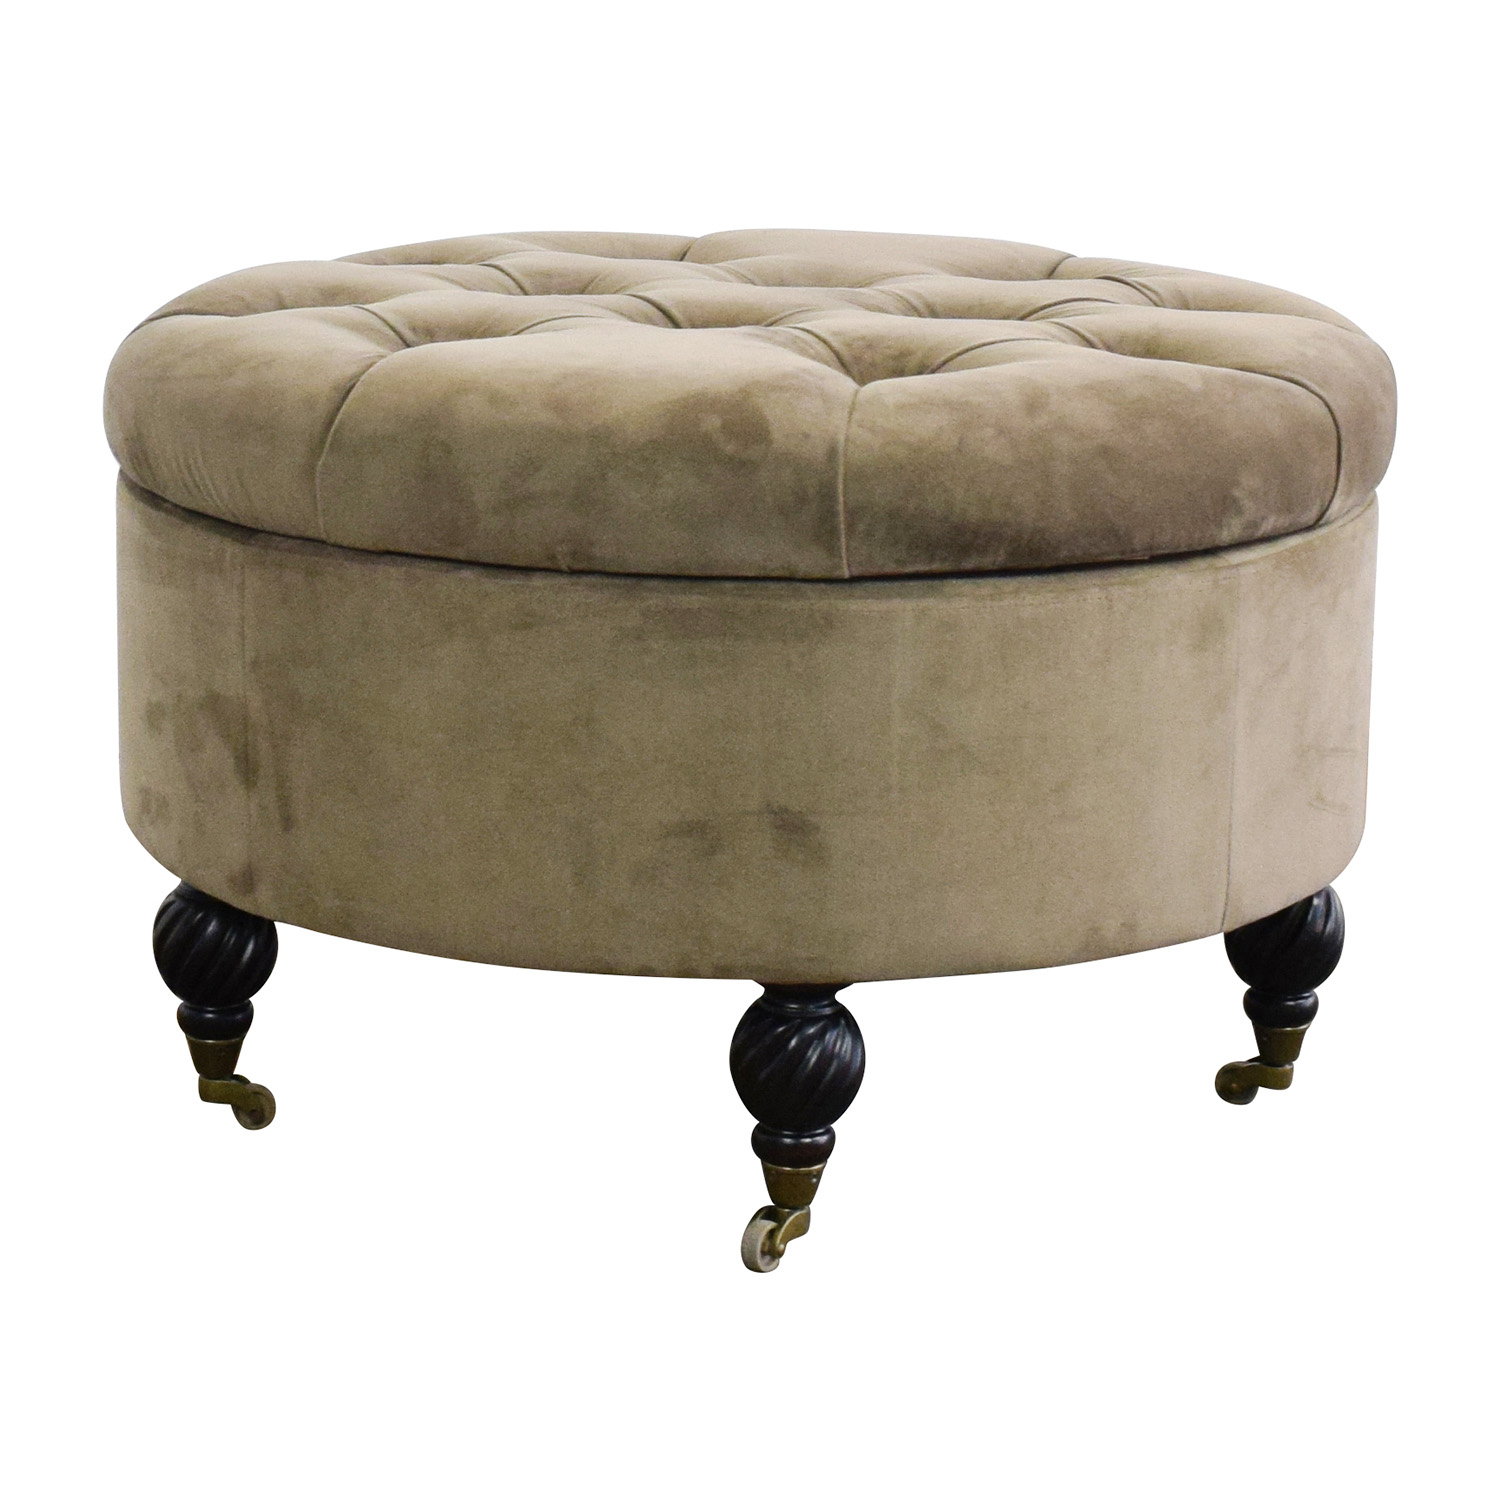 55% Off  Frontgate Frontgate Round Tufted Storage Ottoman. Closet Envy. How Much Is A Bathroom Remodel. Turquoise Girl Room. Chaise Lounge Chairs. Colored Concrete Patio. Cinderella Twin Bed. Concrete Pillars. Safari Decor